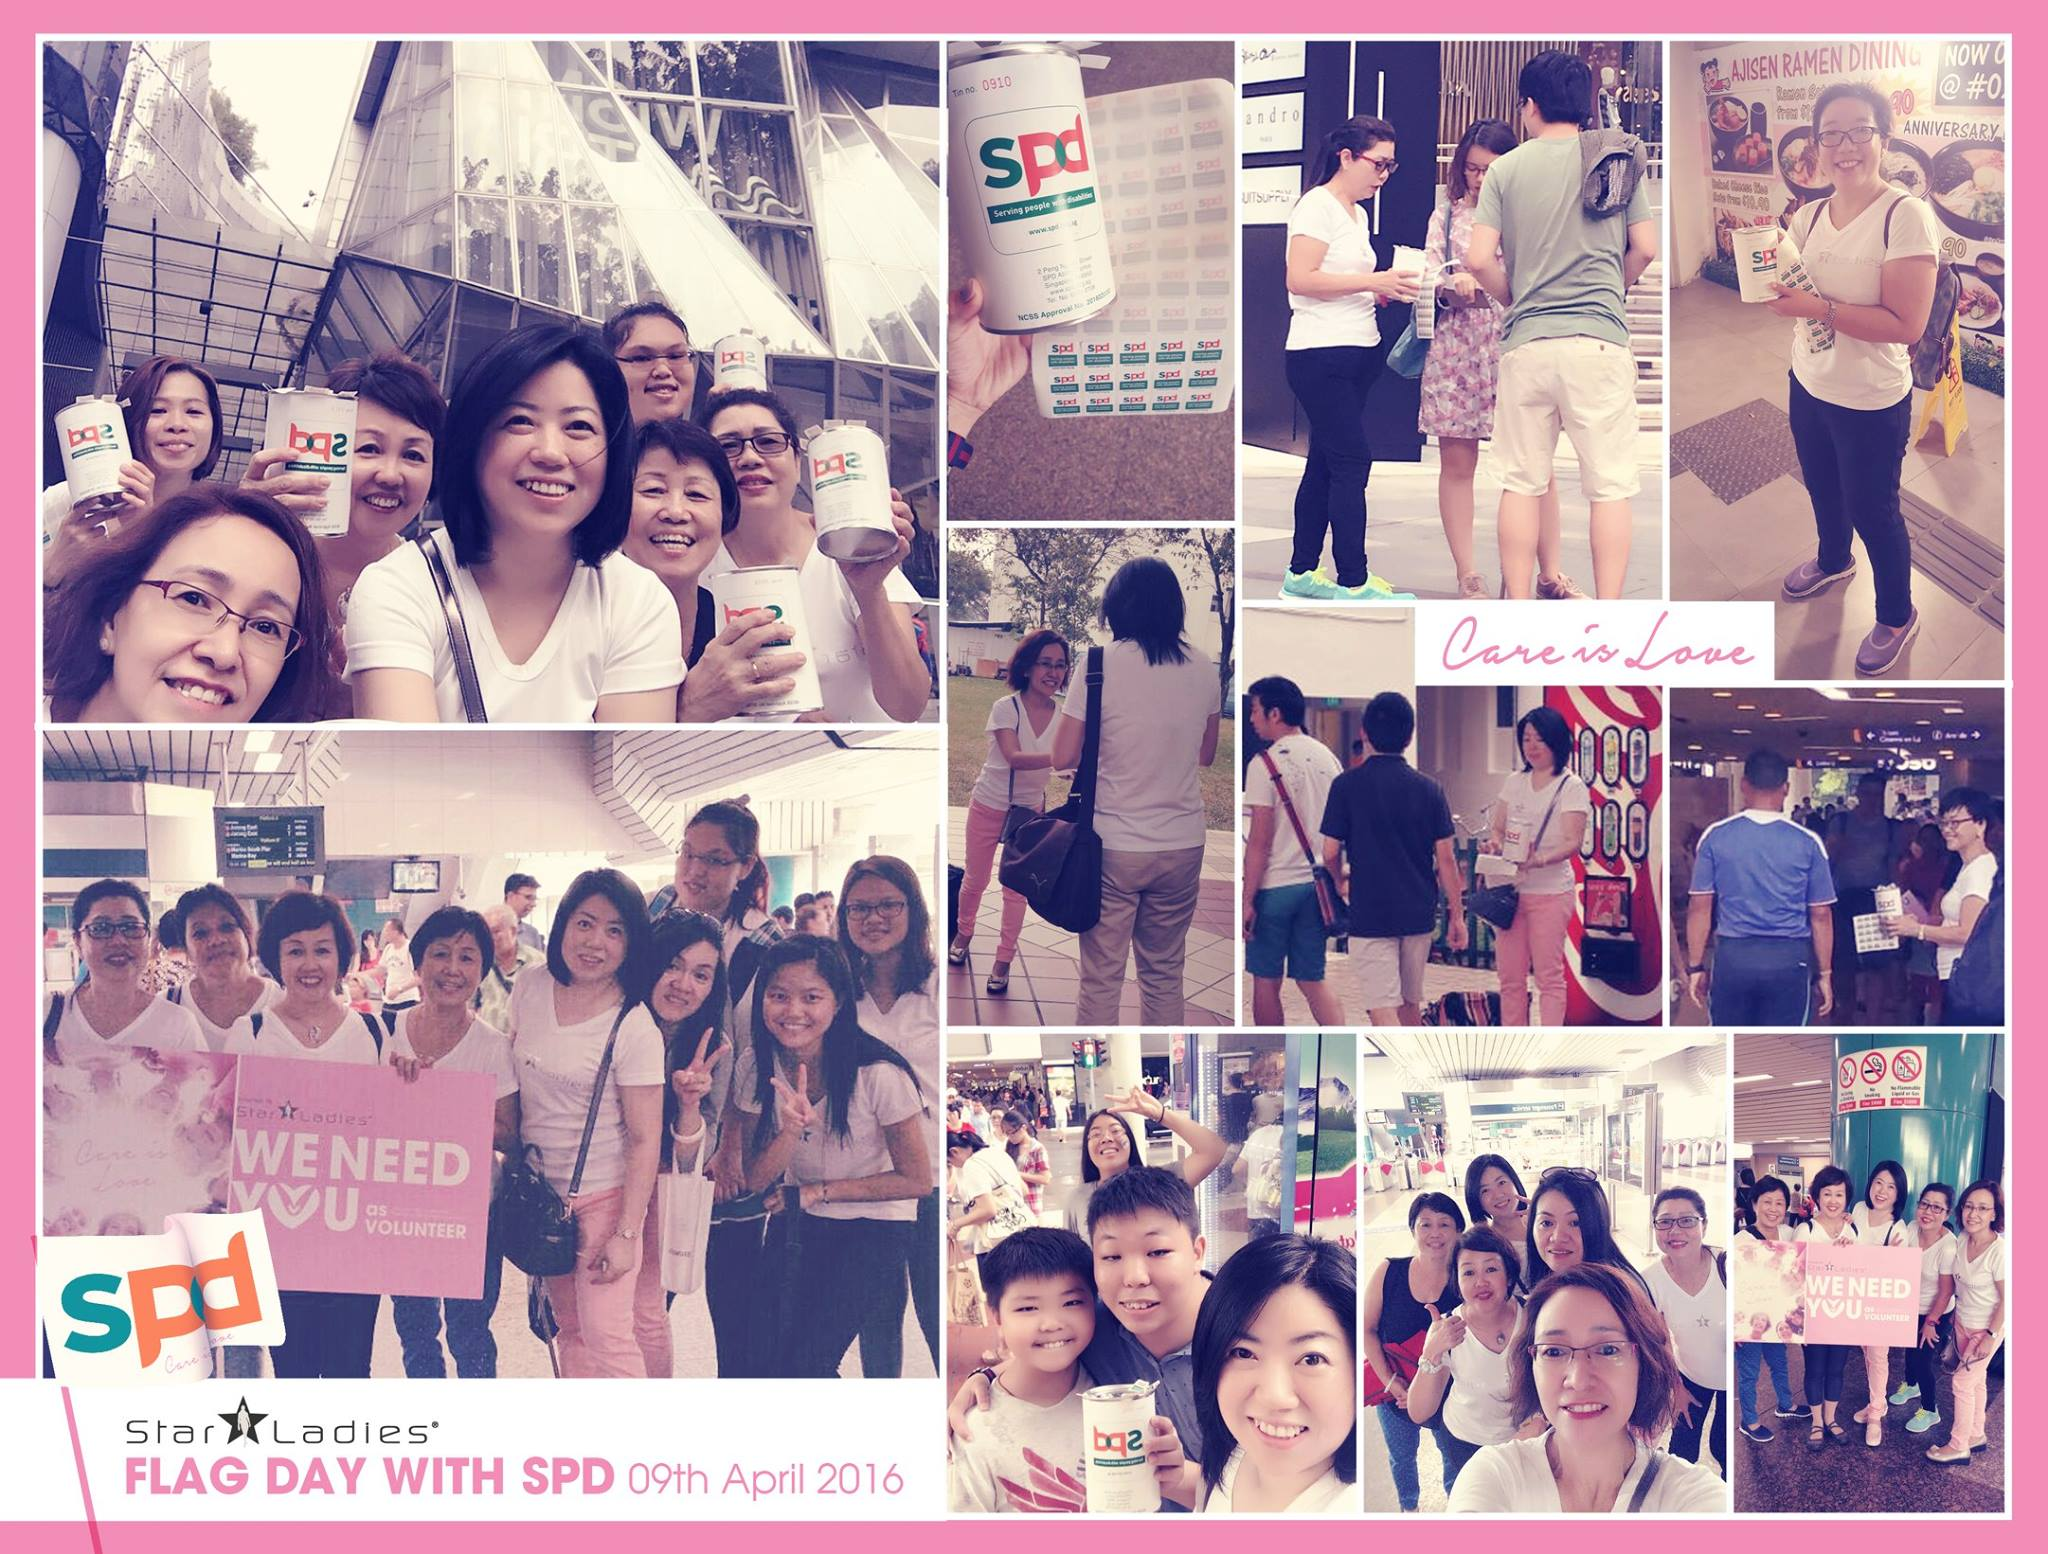 CARE IS LOVE @ SPD FLAG DAY |    StarLadies Volunteers has joined Flag Day with SPD on 9/4! We are proud to have our StarLadies Volunteer, sparing their morning to share some help with SPD, though they need to attend [Shanghai Night] party at evening time. During fund raising, we have our StarLadies Volunteers distributing around Orchard, Bishan and Ang Mo Kio! It was a fun experience with SPD in fu  nd raising, approaching everyone for donation, in order to help SPD to improve their center facilities! Though weather was hot and there was a sudden heavy down pour, this does not stop us from raising fund for the needs!  Join us as we move on to our May activity! Stay Tune! To join, Click here: http://starladies-international.com/click-me/